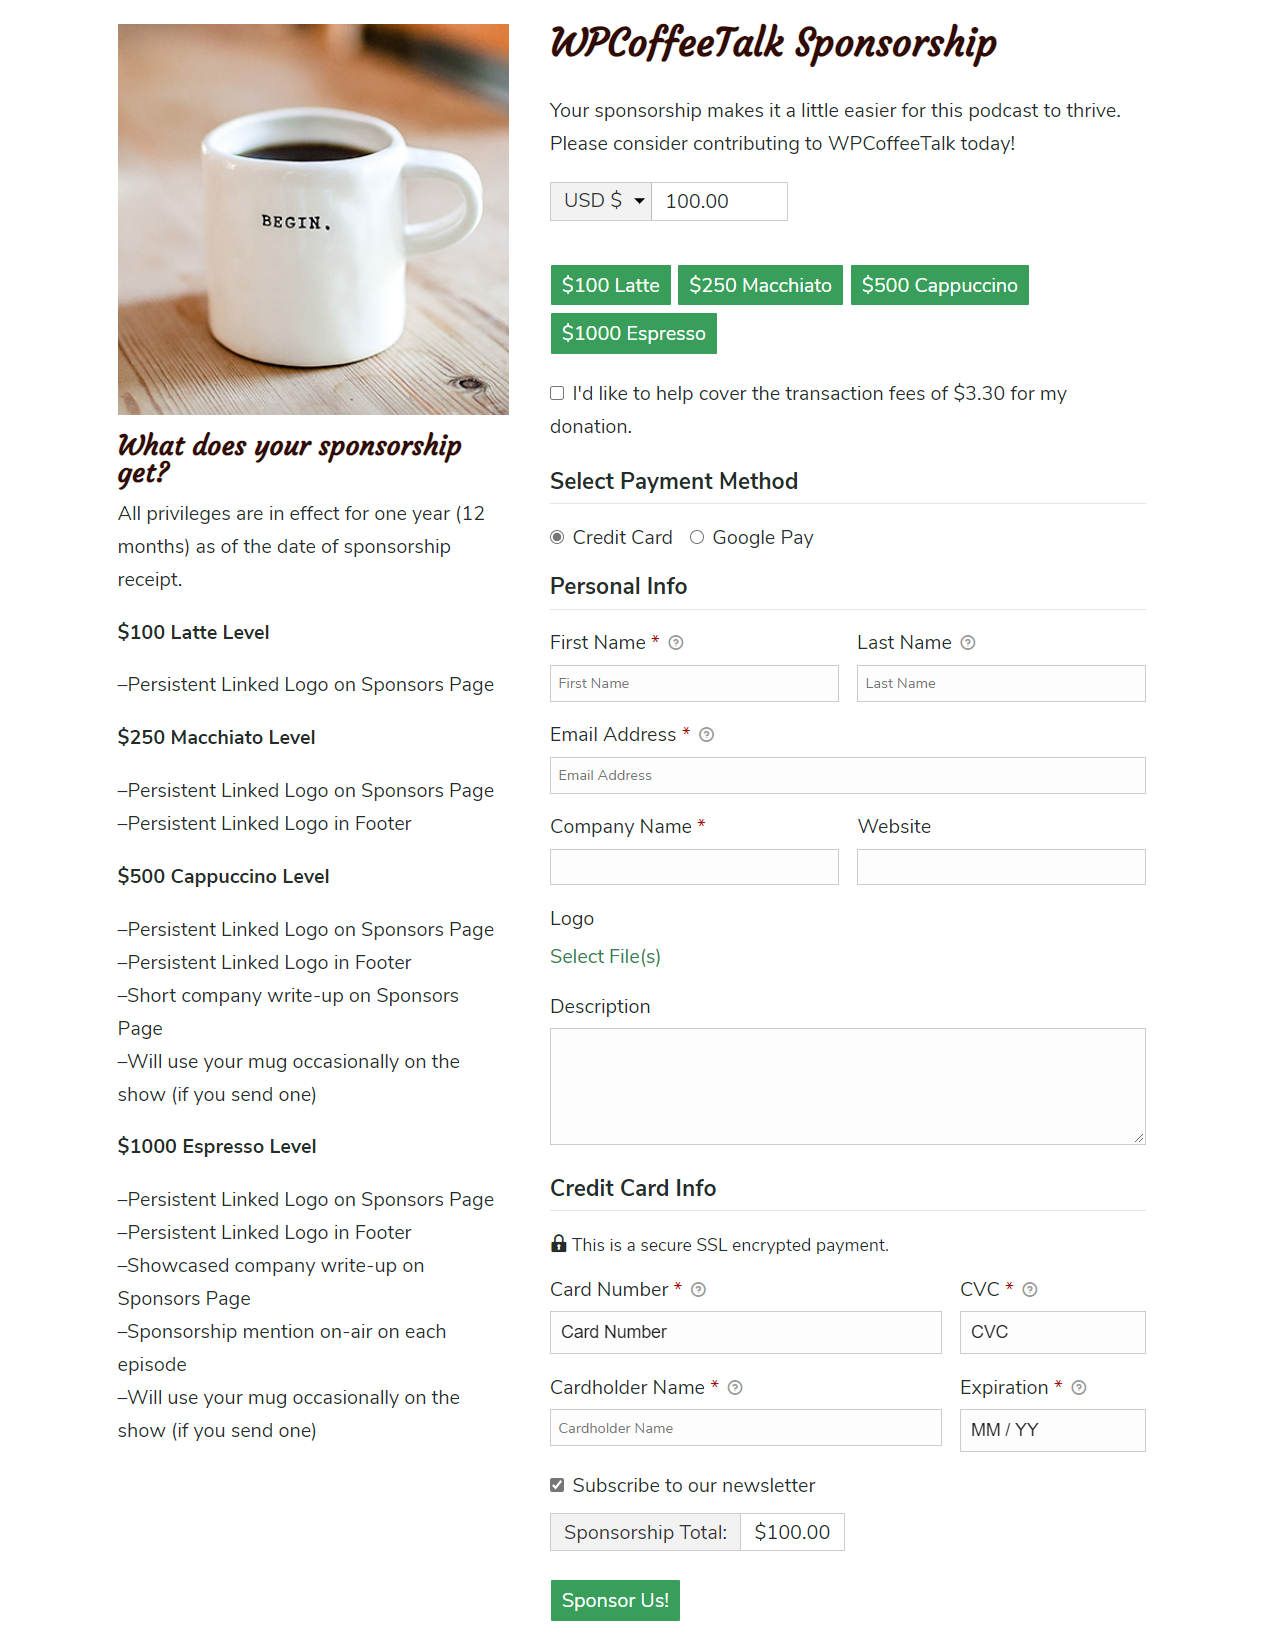 The WP Coffee Talk sponsorship form shows any potential sponsor what they get out of their funding alongside the giving options.